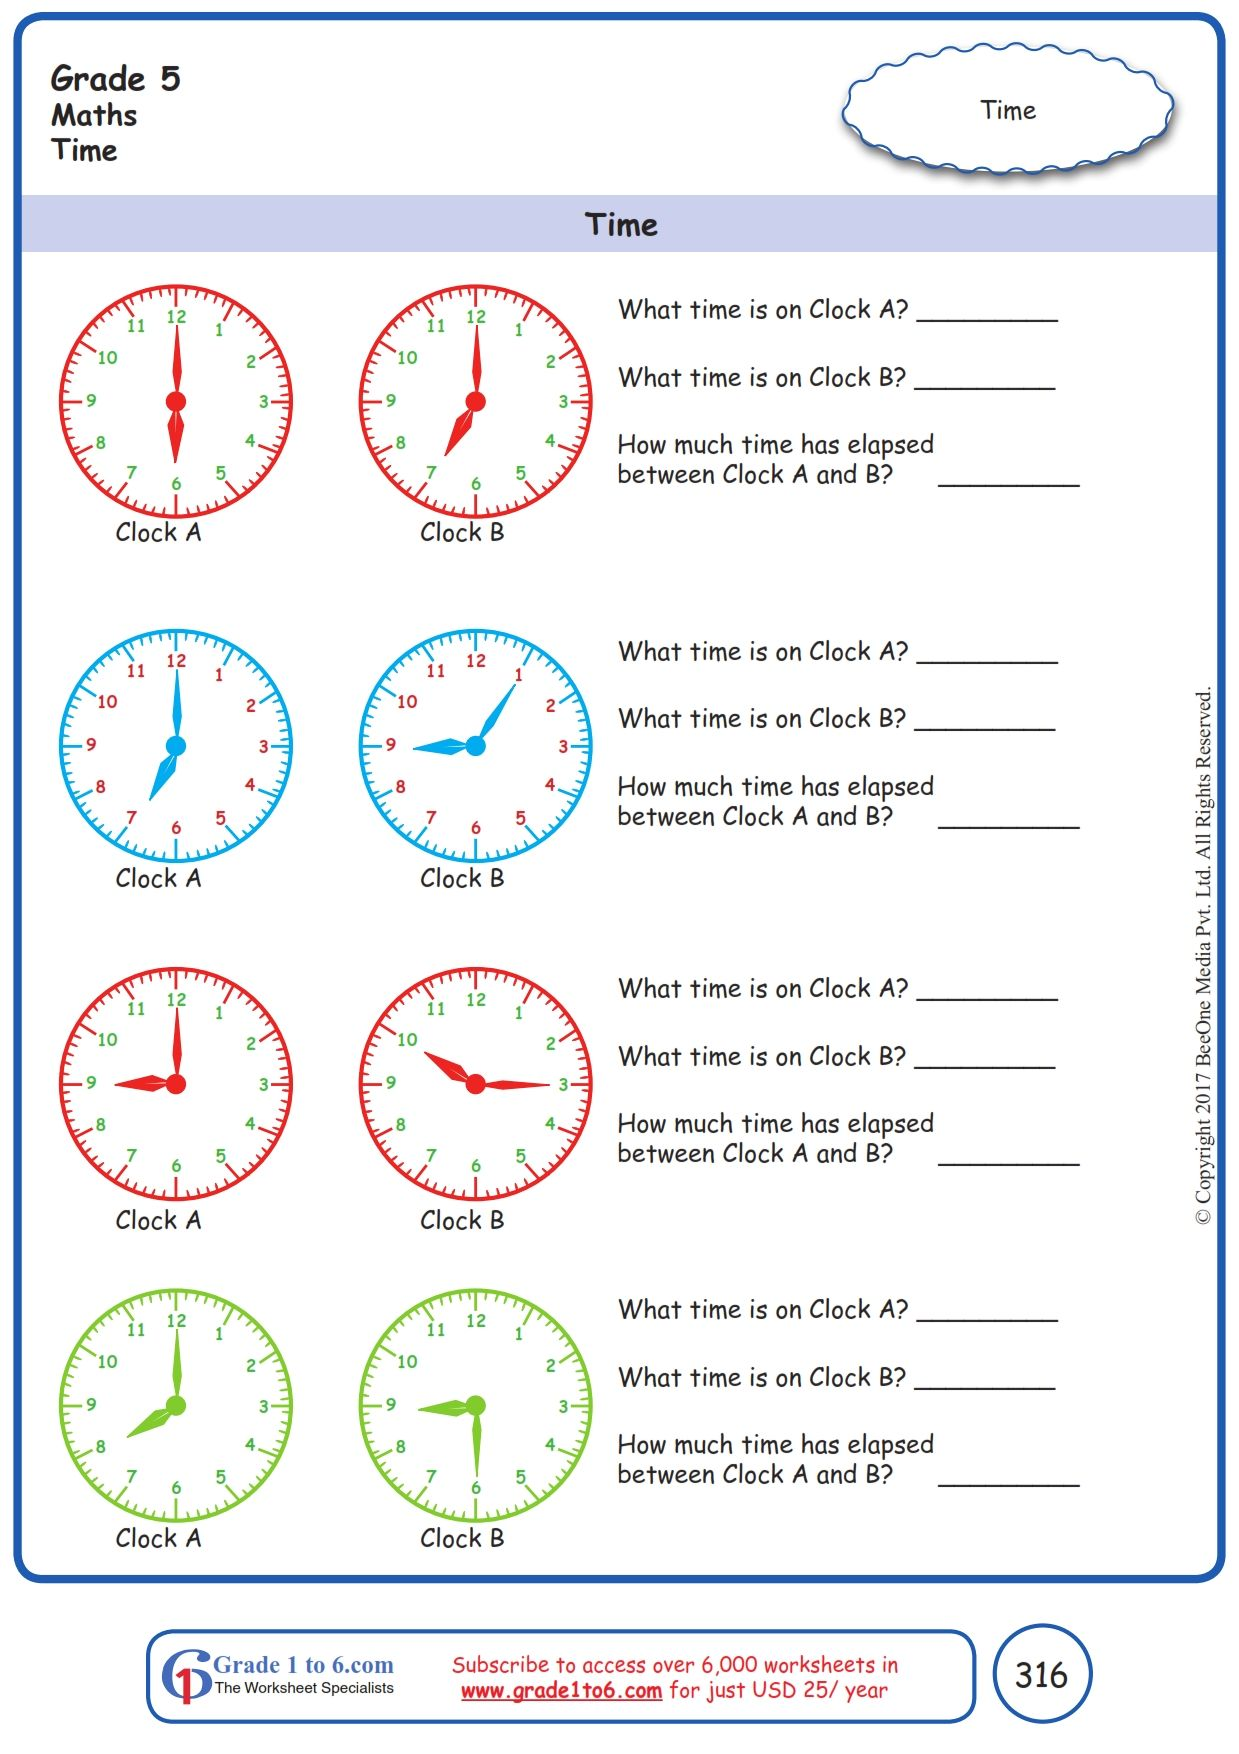 Worksheet Grade 5 Math Time In